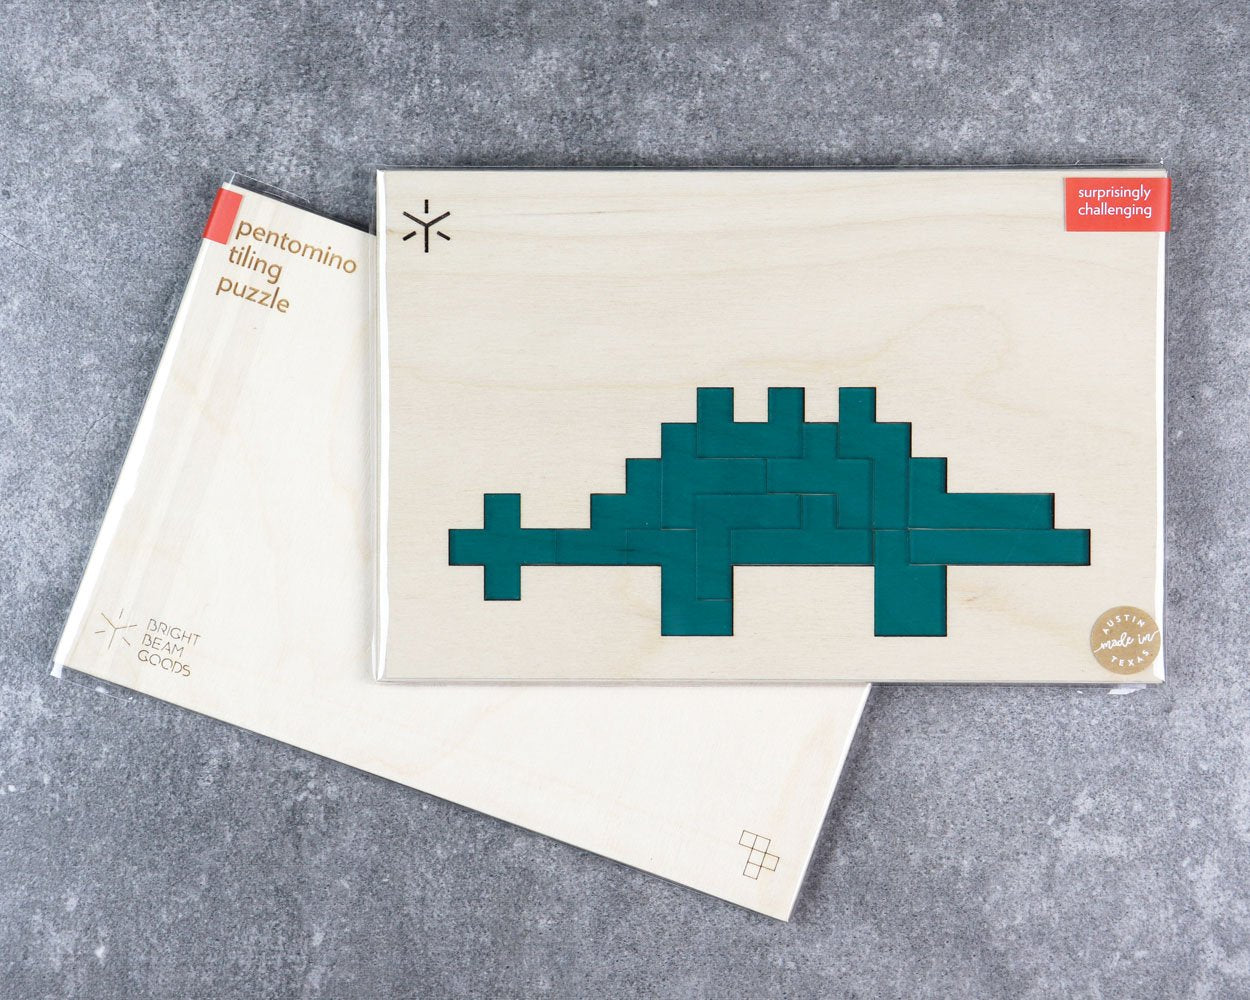 Stegosaurus pentomino puzzle in packaging